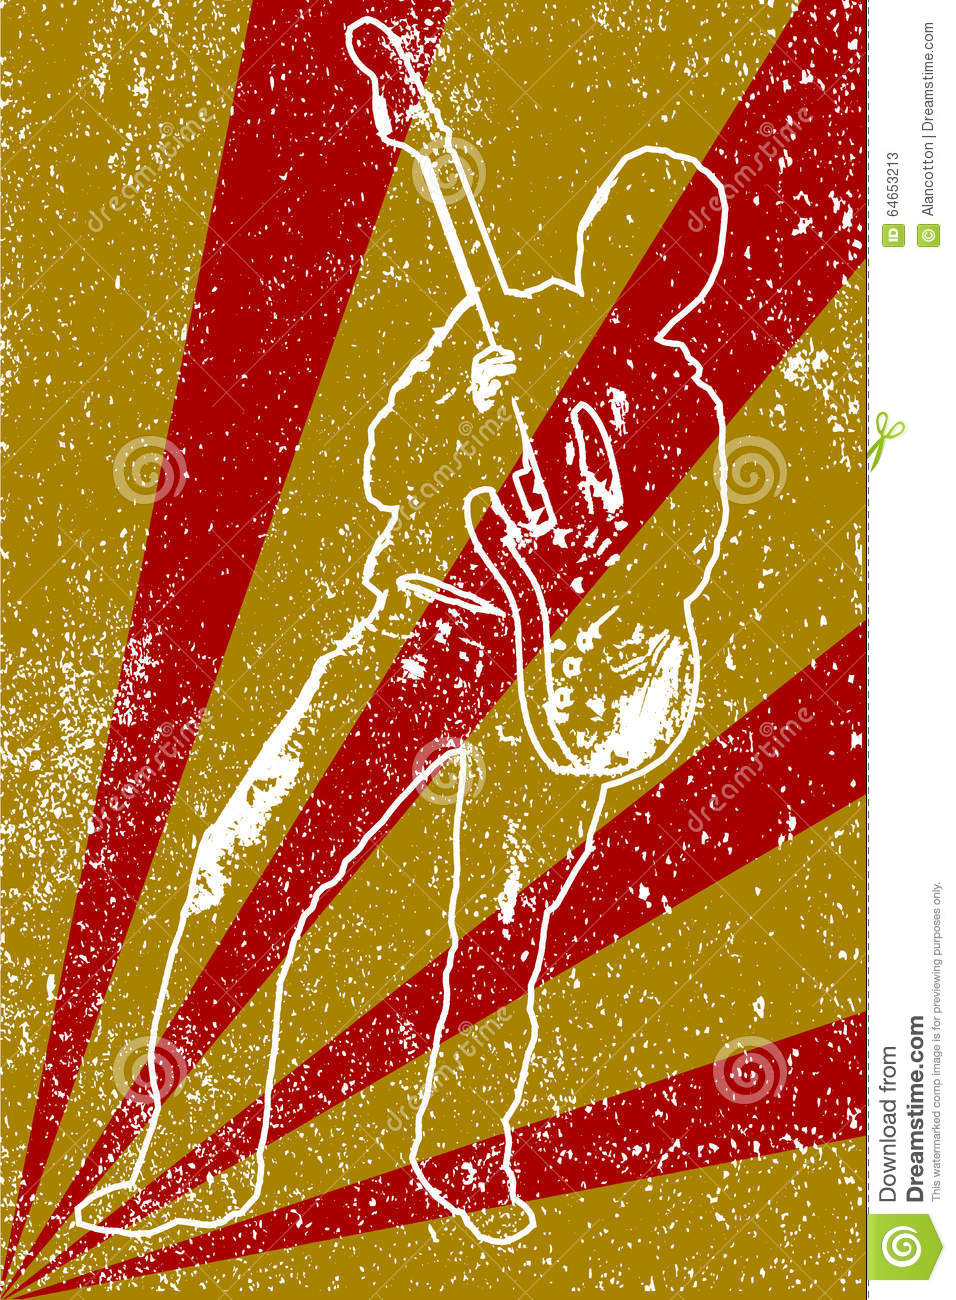 Band Poster Background Stock Vector - Image: 64653213